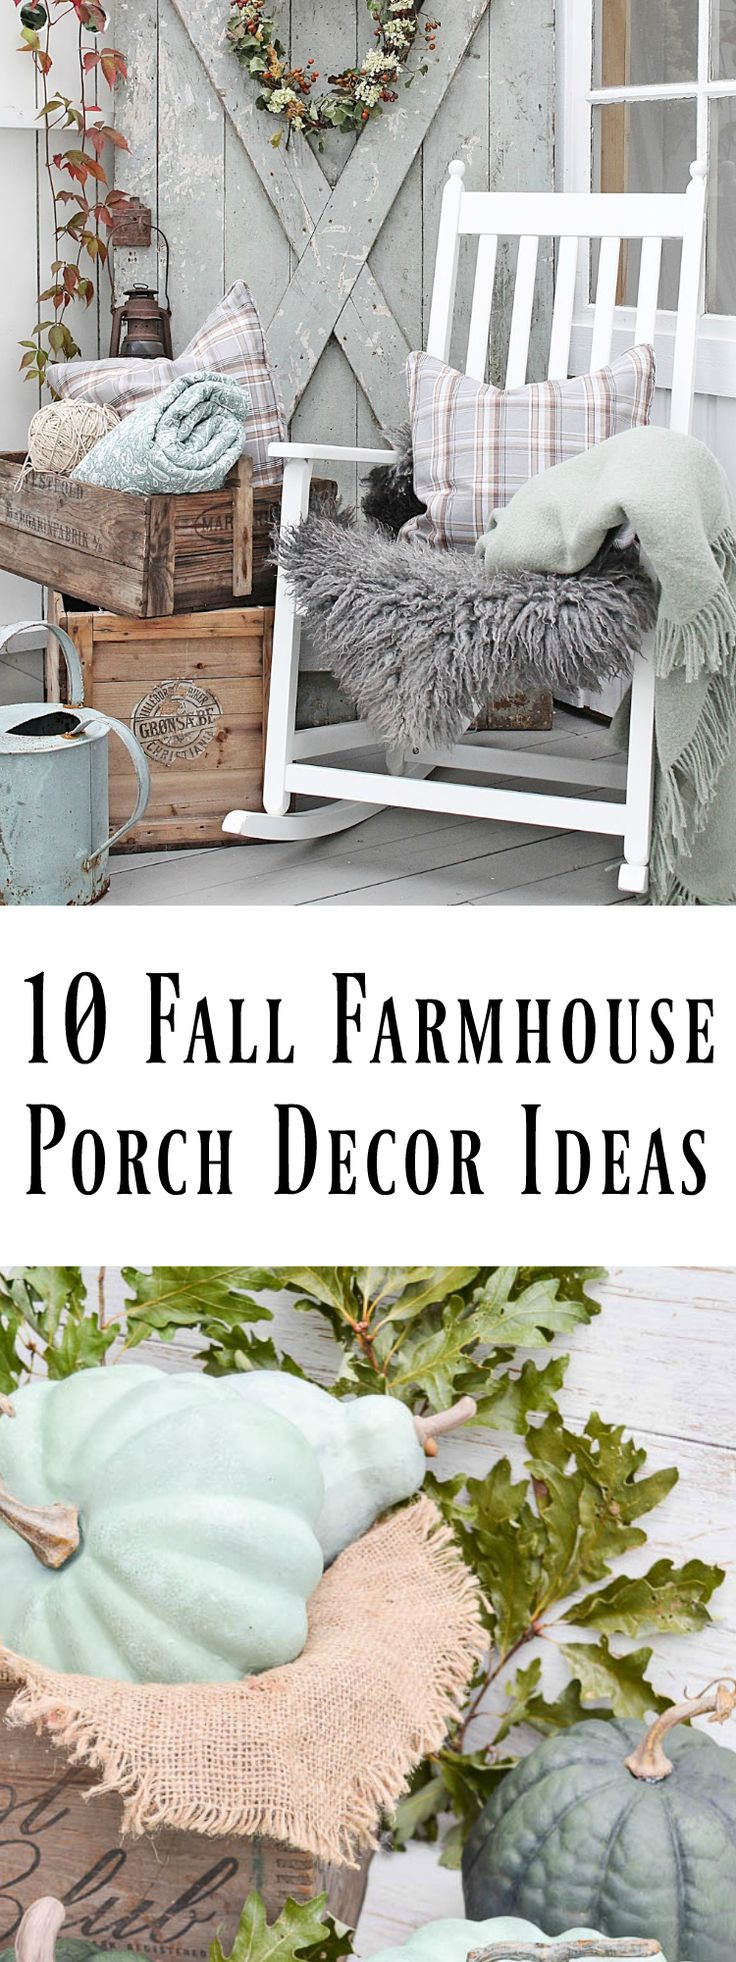 Love farmhouse style? Come sit for a spell and be inspired by these 10 fall farmhouse porch decor ideas. via @dandelionpatina